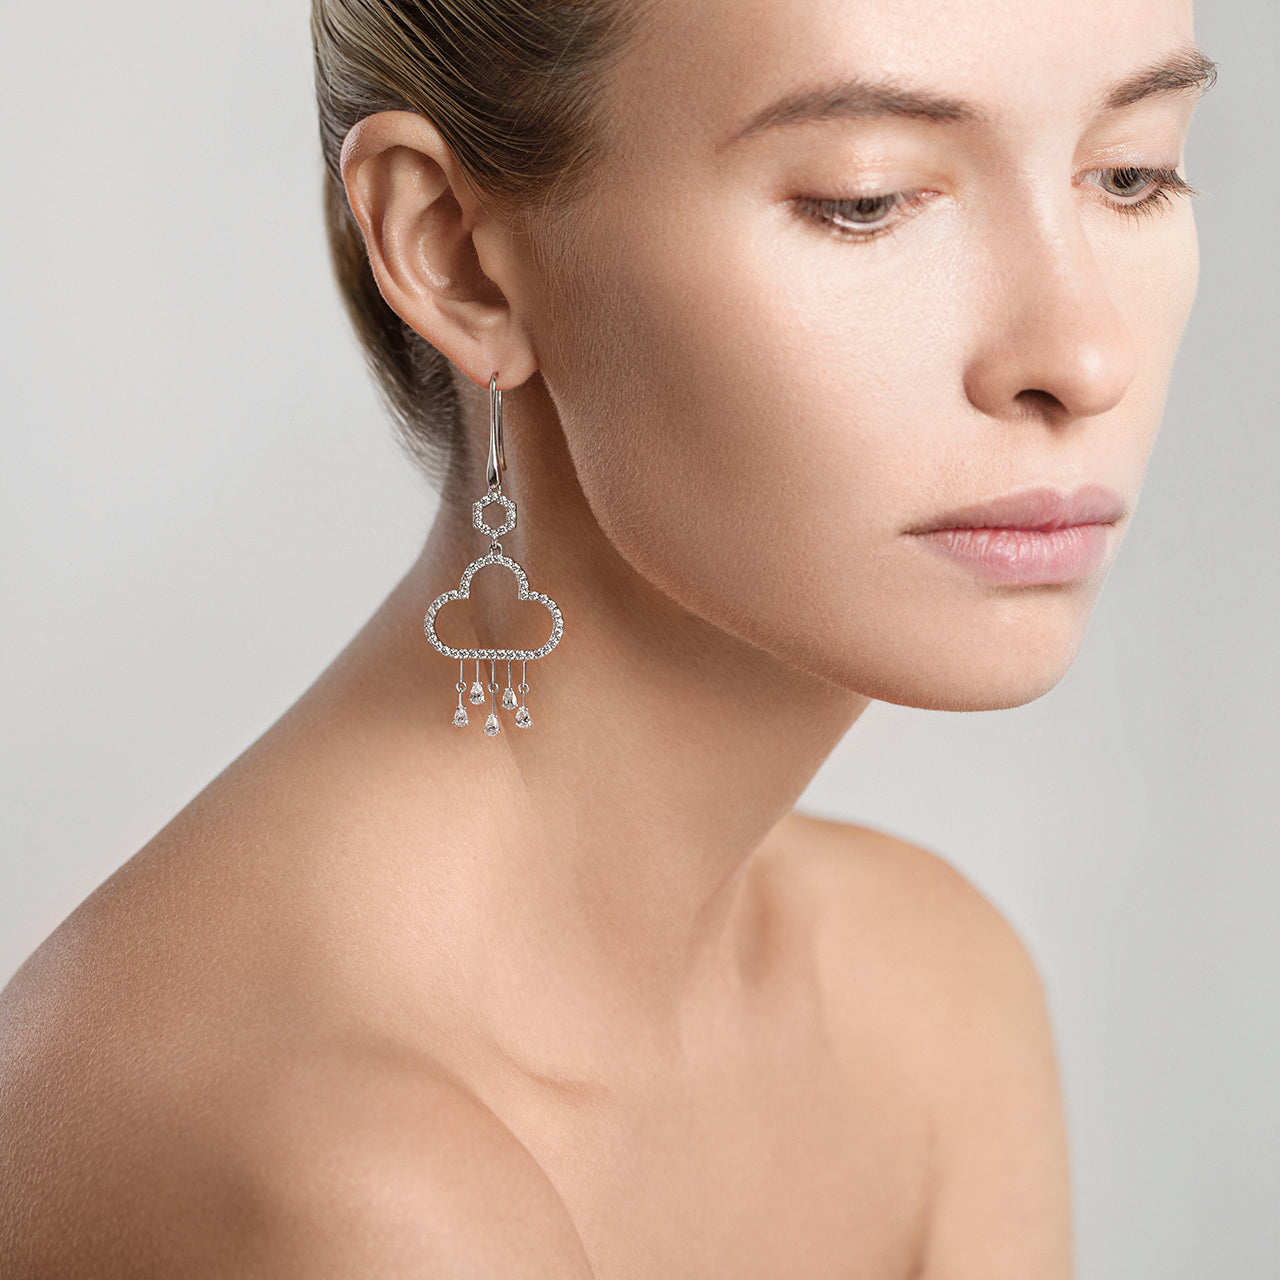 Aqua Earrings with Diamonds on Model